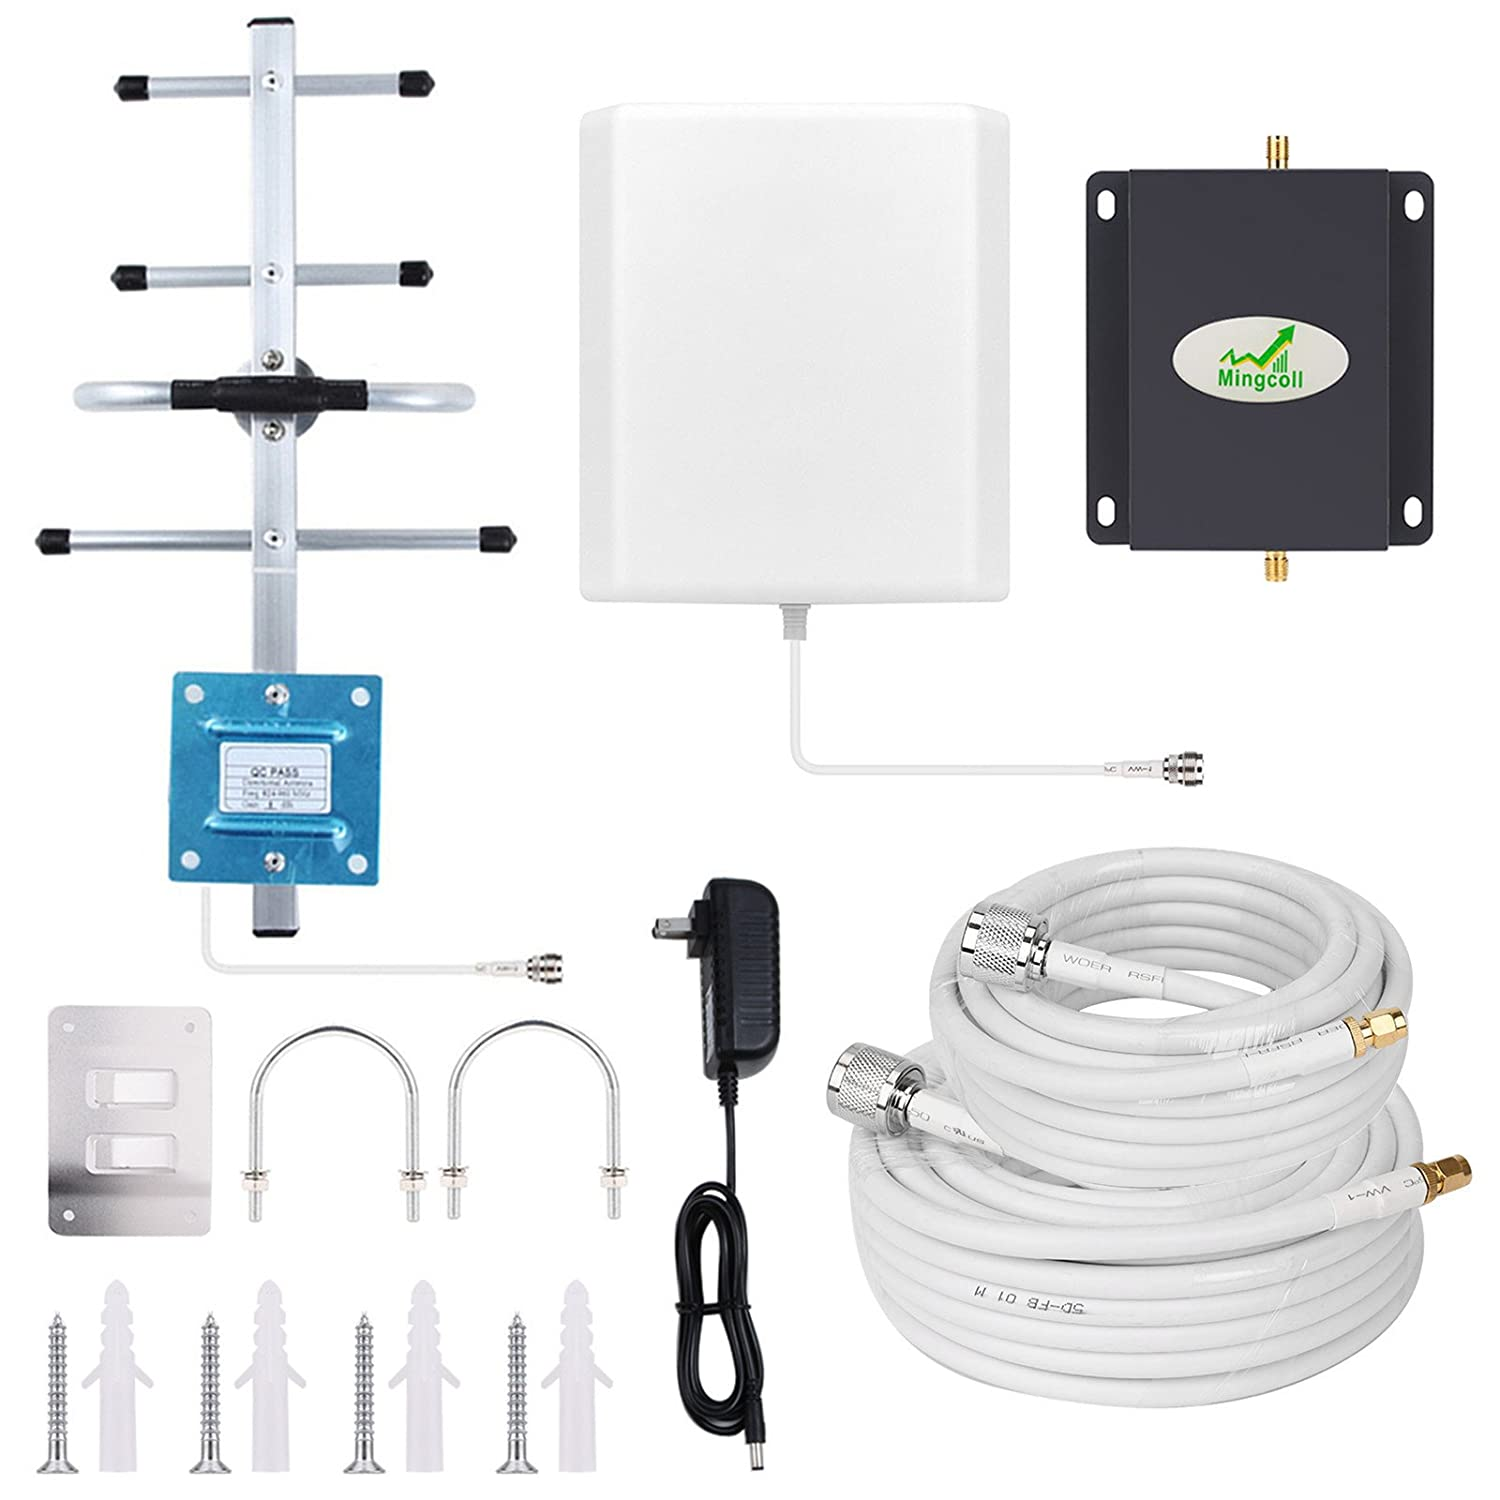 Home 4G Cell Phone Signal Booster AT&T T-Mobile Cell Signal Booster Mingcoll 700MHz Band 12/17 FDD ATT Mobile Cellular Signal Booster Mobile Phone ...